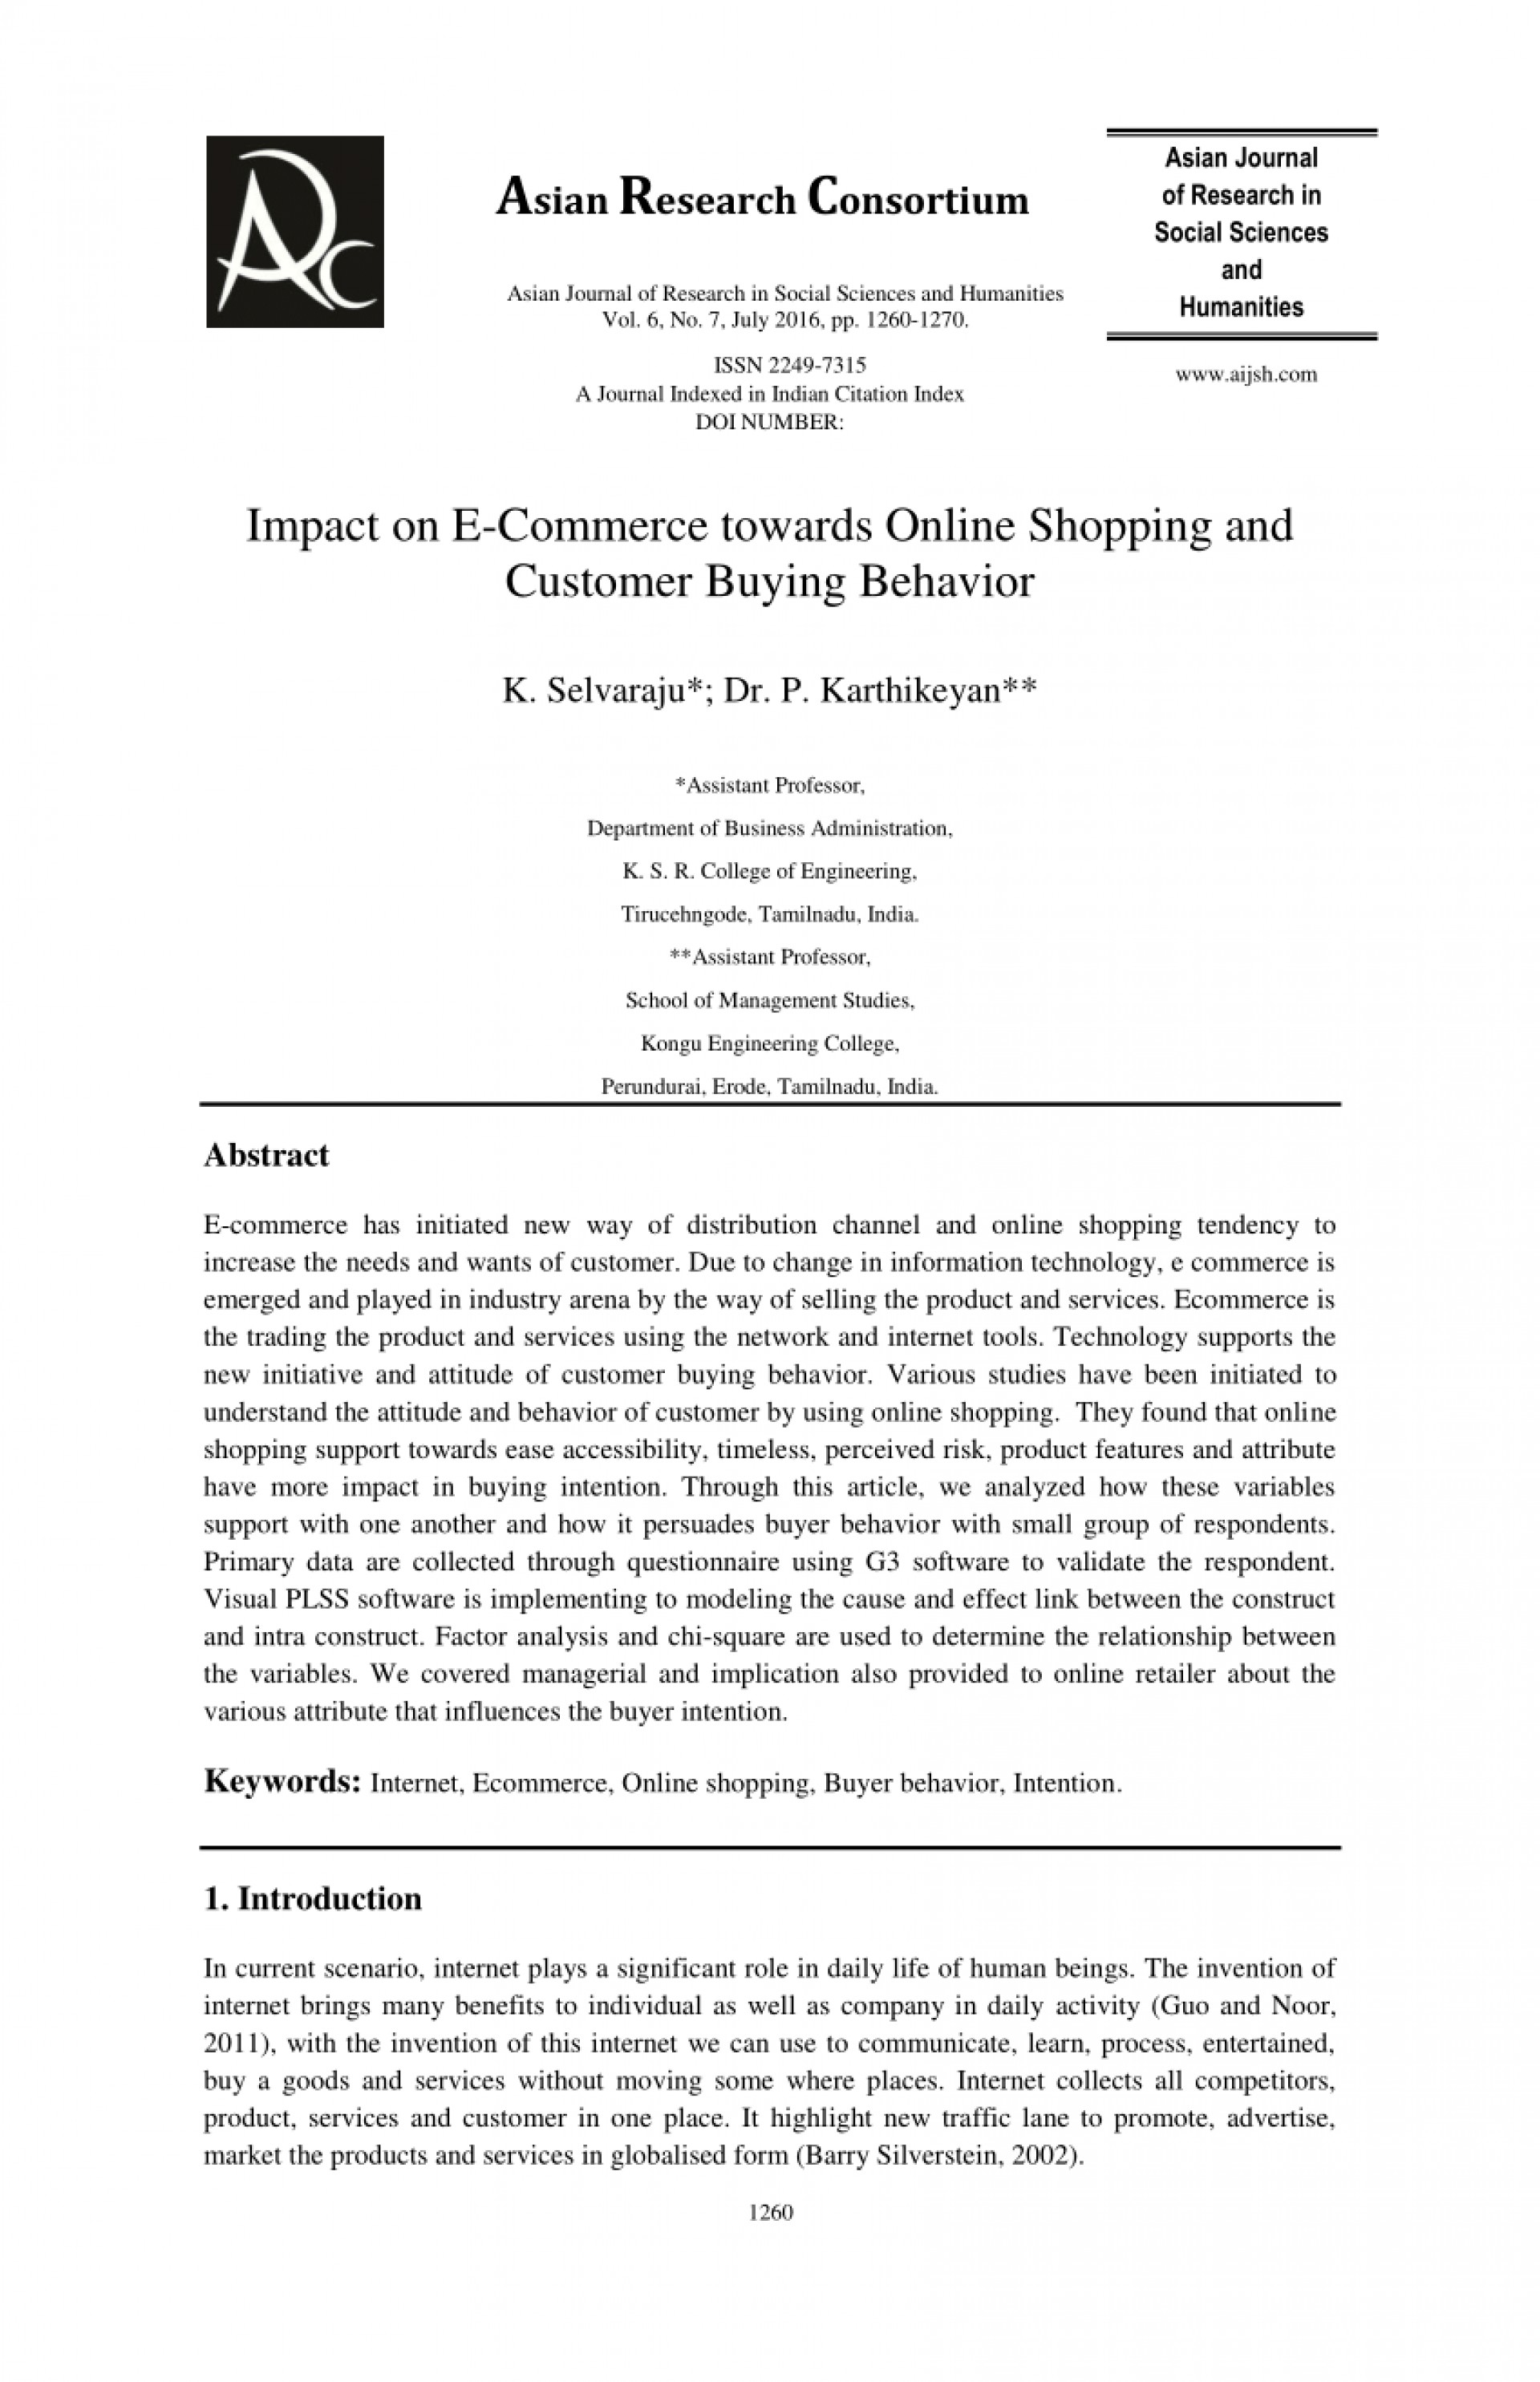 006 Largepreview Research Paper Online Shopping In India Striking Papers On Grocery 1920